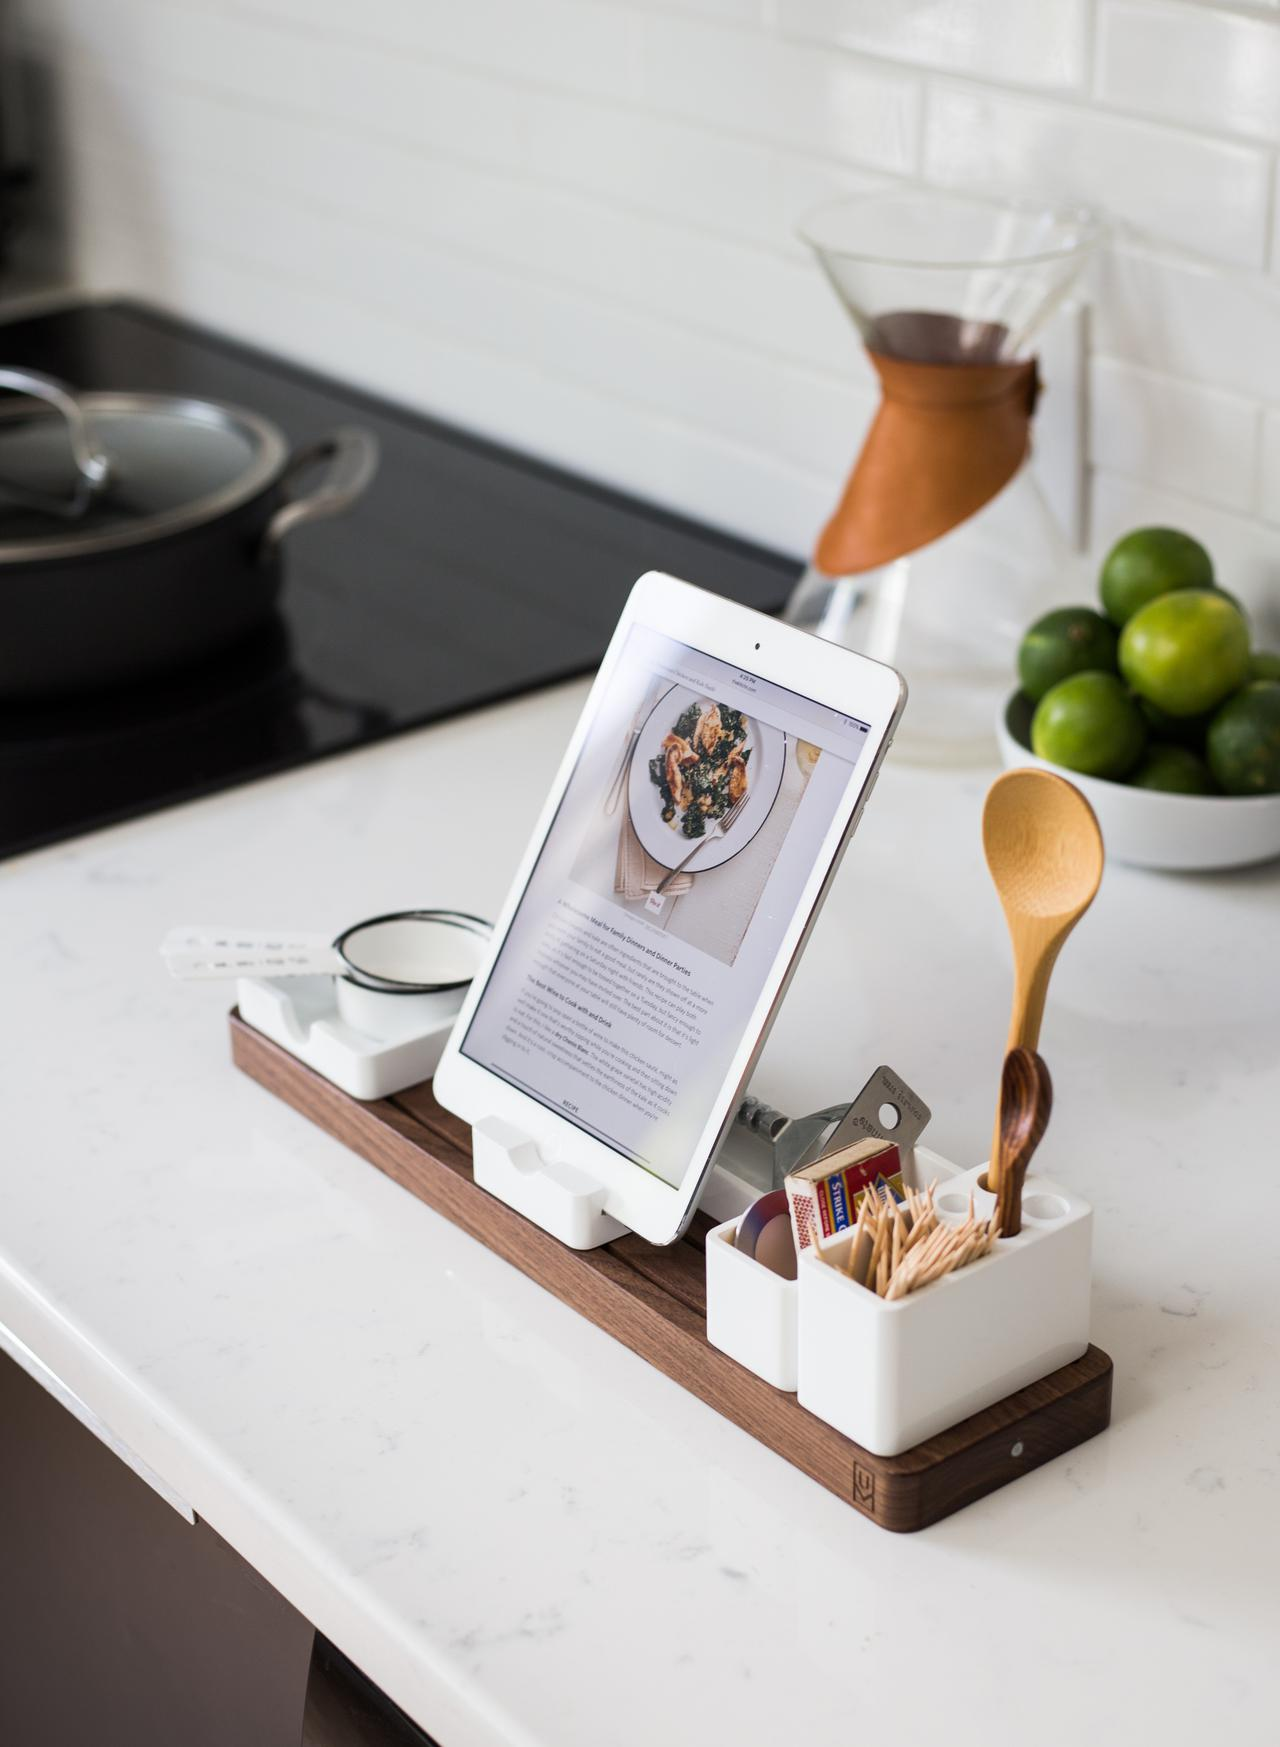 recipe tray on counter that includes a tablet